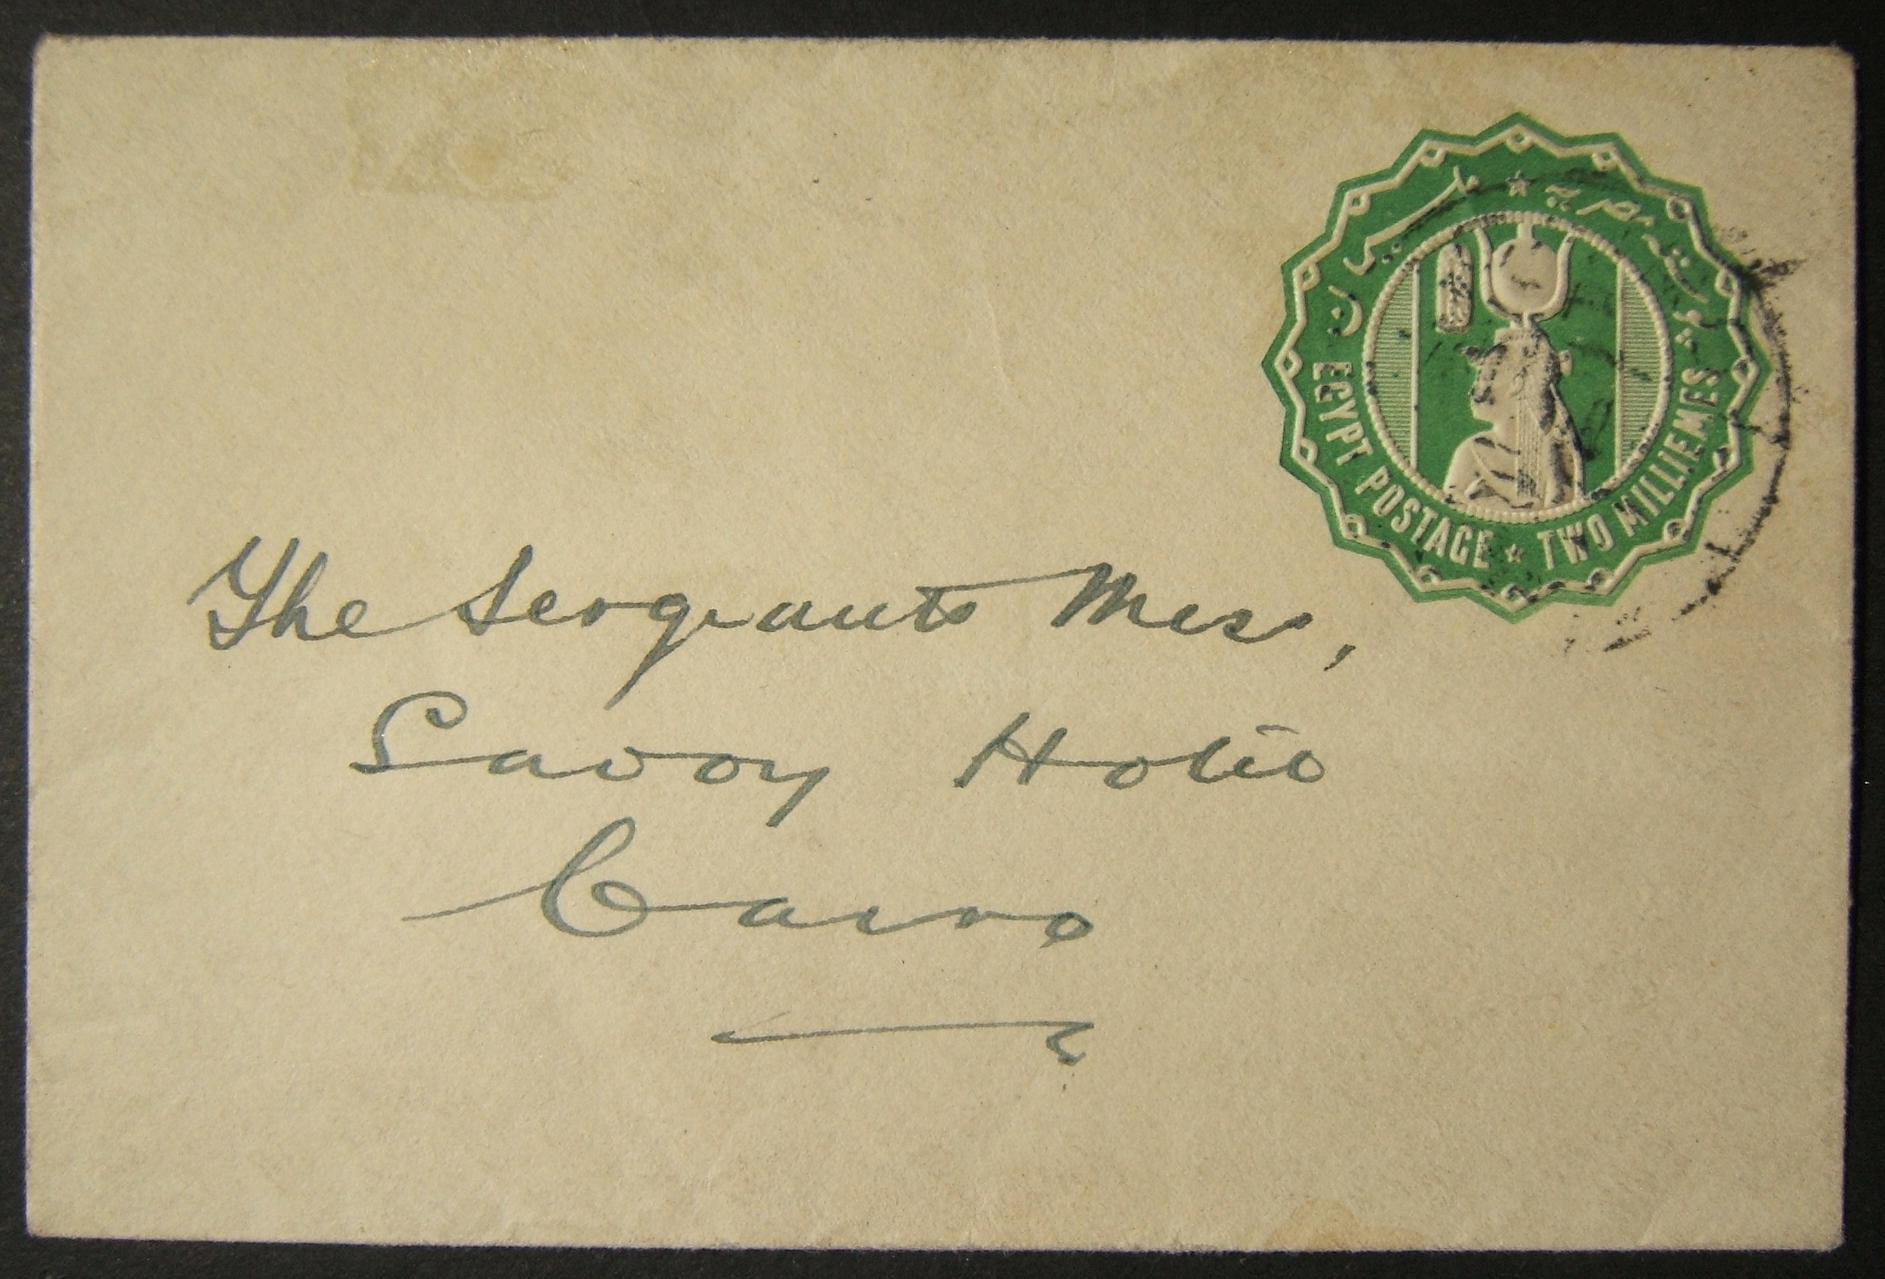 British WWI military mail in Egypt: 8 NO 1919 local CAIRO embossed pp'd stationary printed matter cv to Sergeants Mess at Savoy Hotel, pre-franked 2m & tied by local civilian PO pm